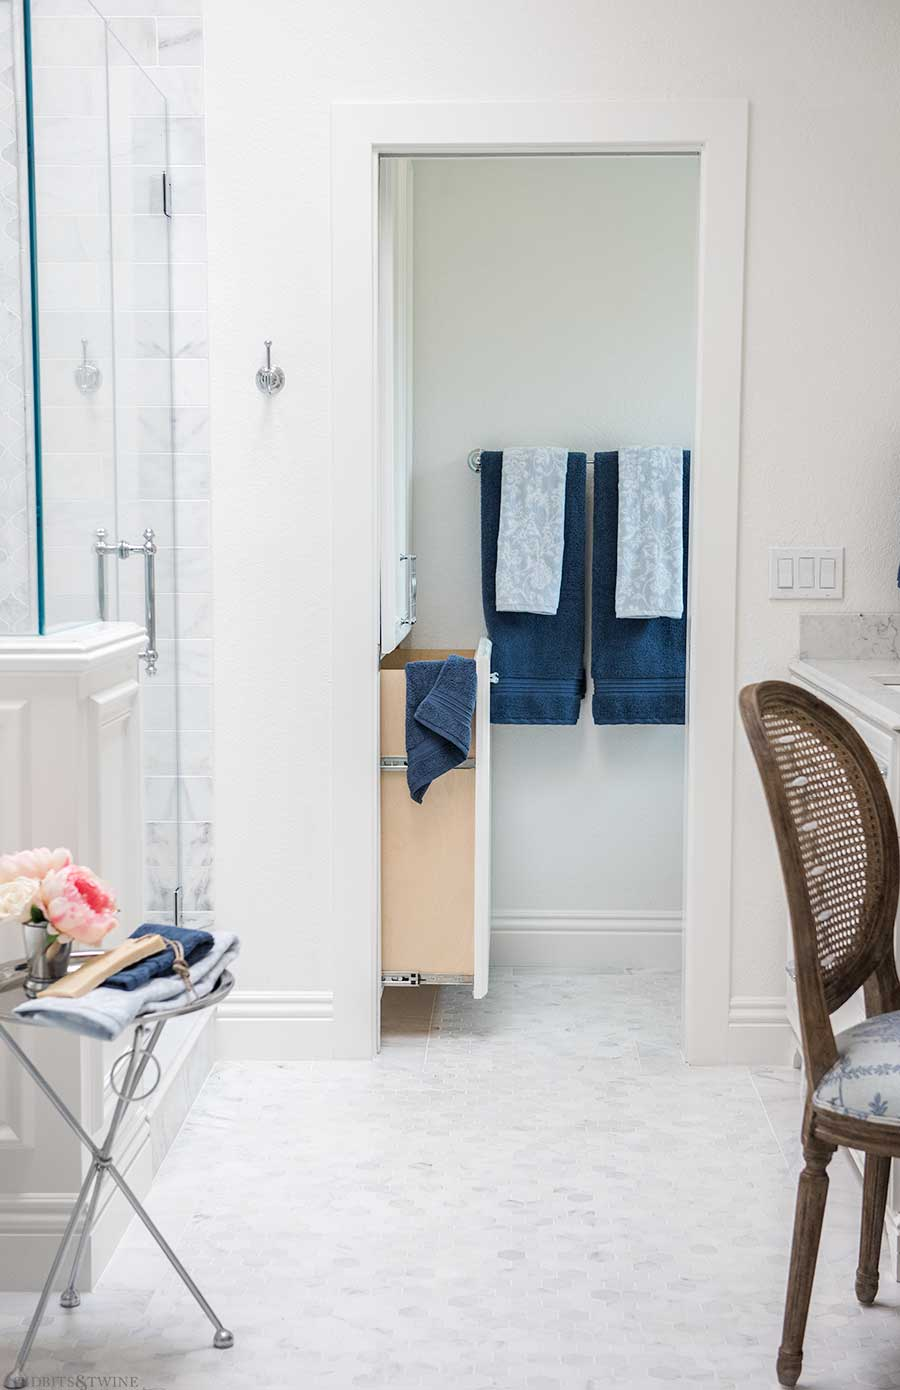 Bathroom built-in with pullout hamper